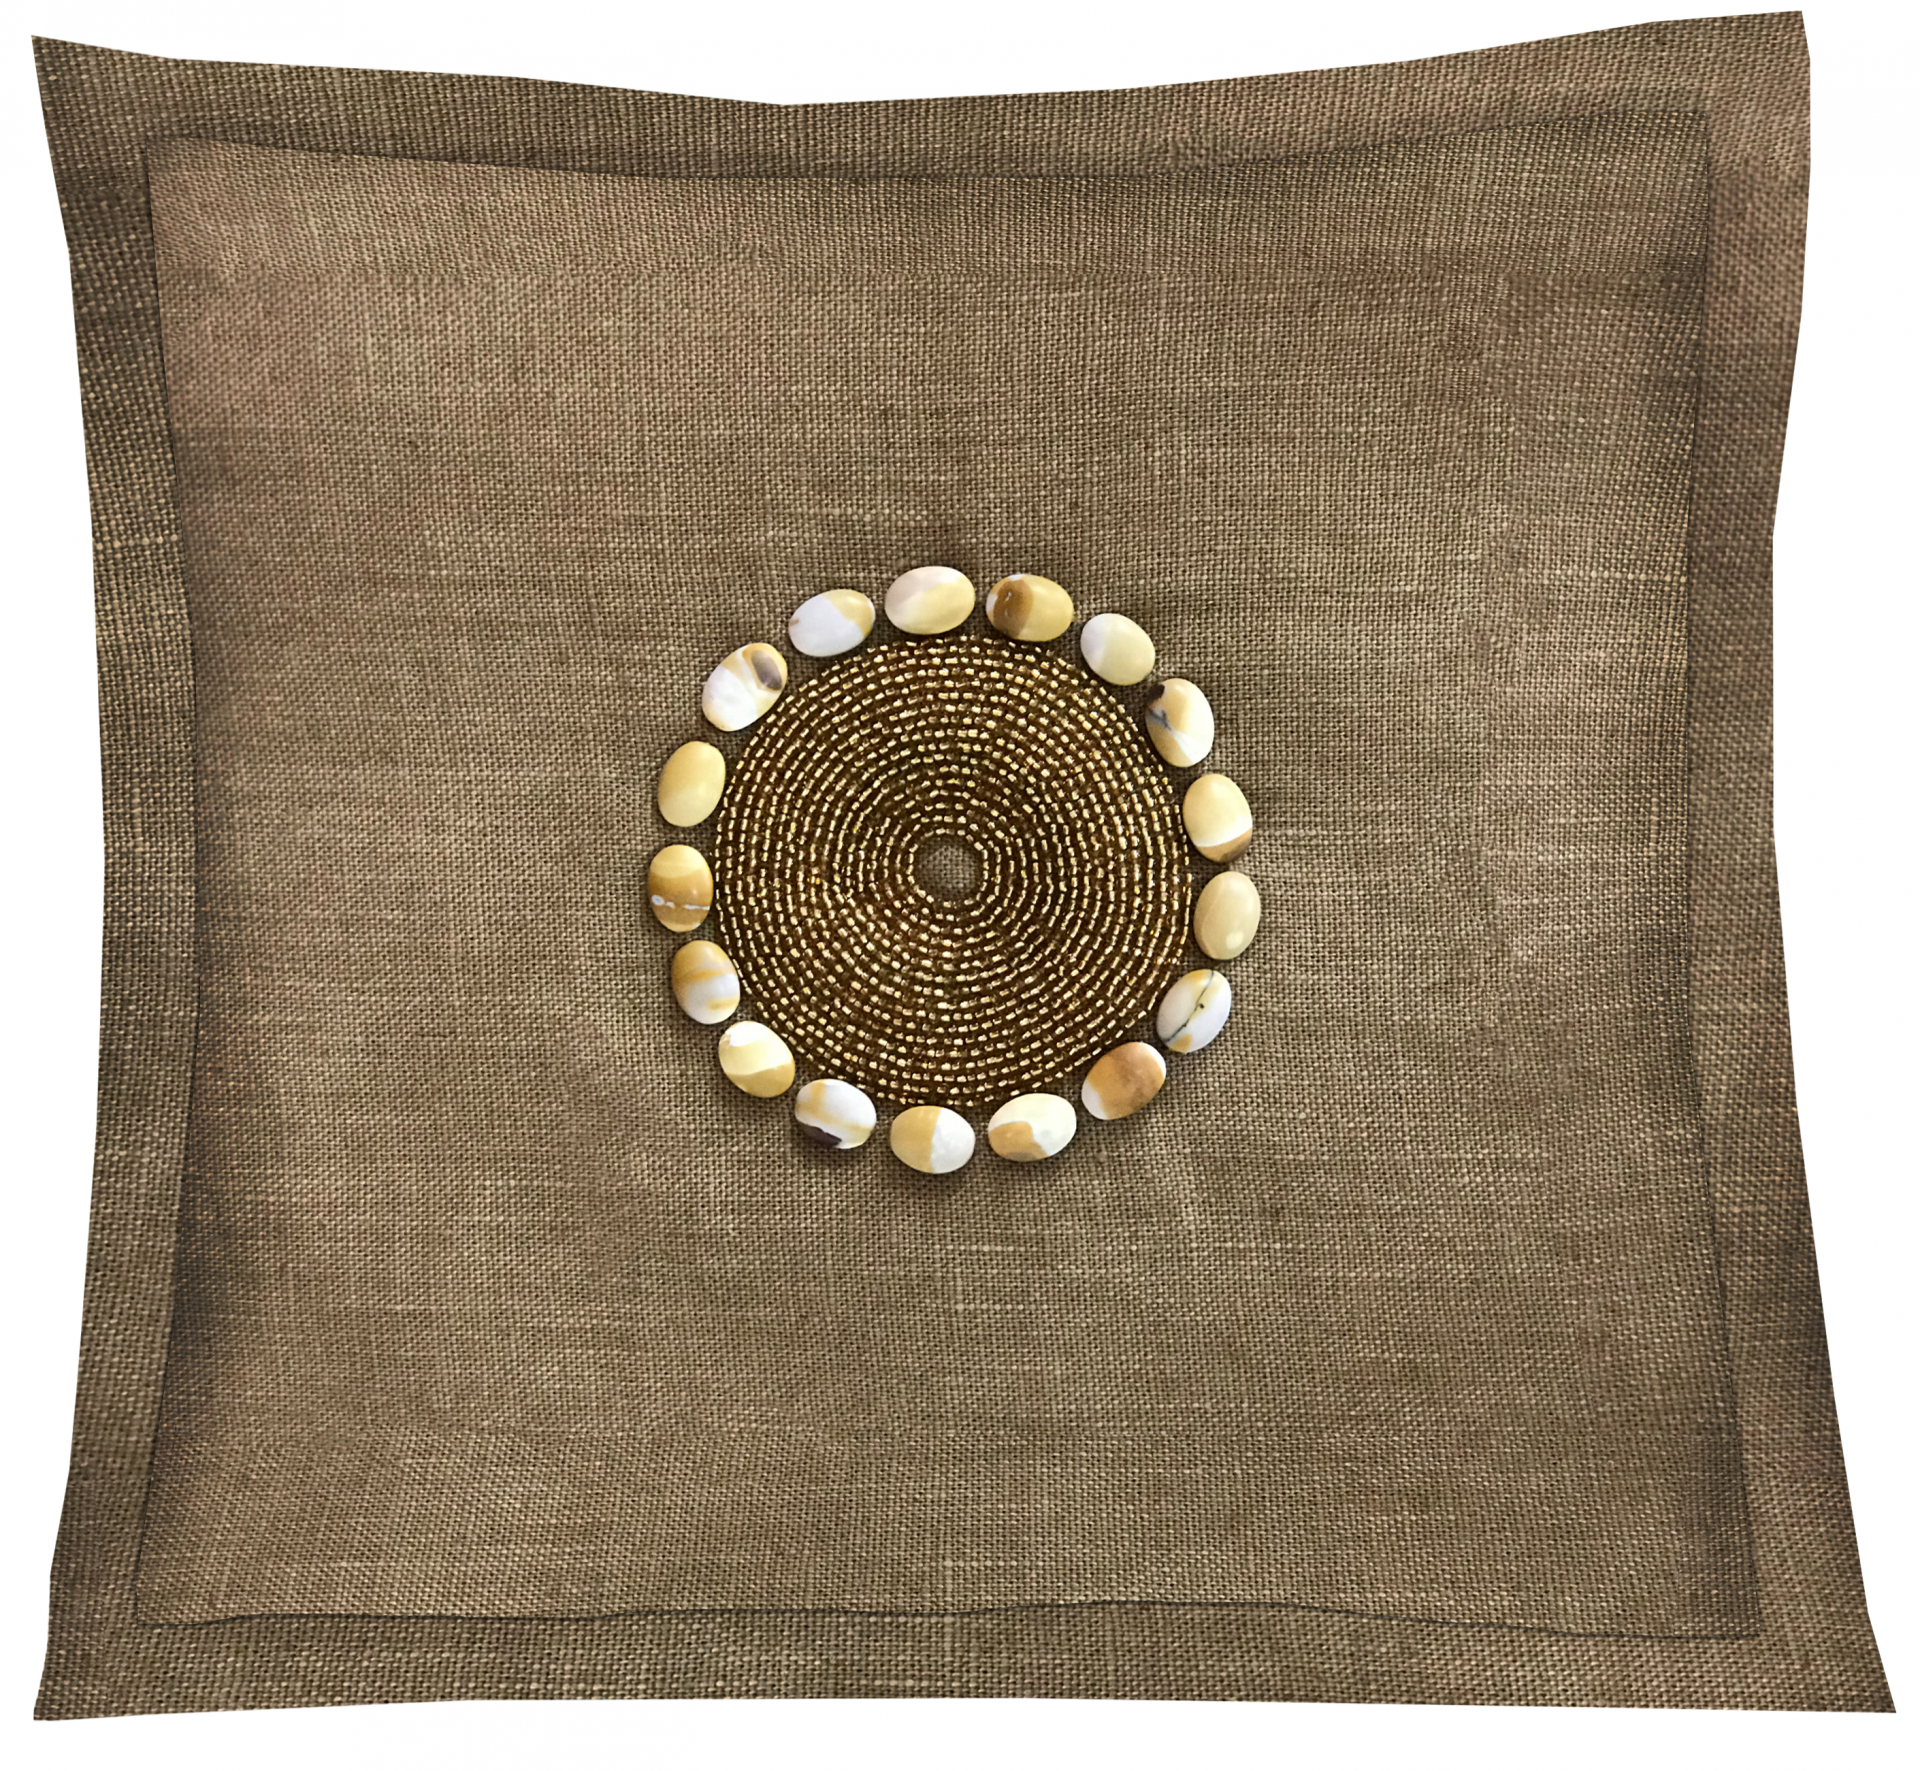 Gold hand-dyed throw pillow with hand-made beads.